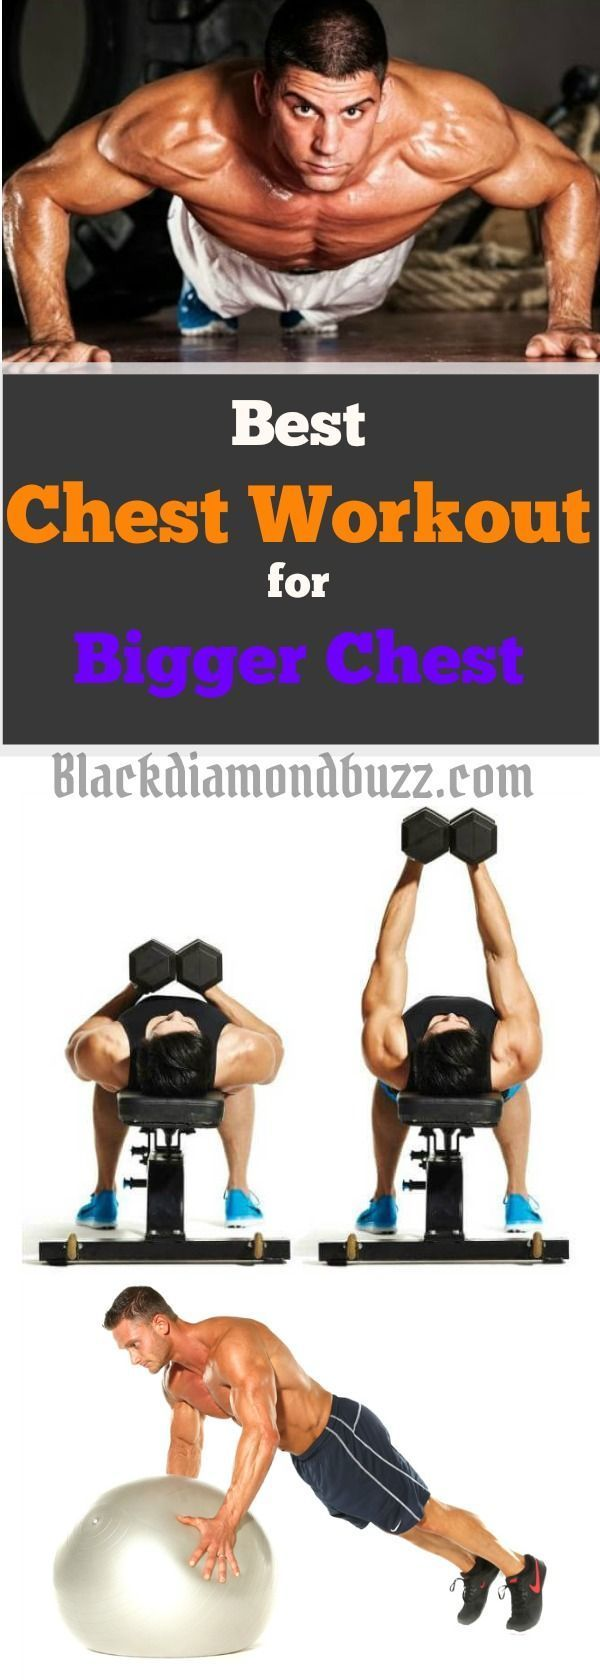 Best Chest workouts at Home With Dumbbell- These chest exercises are for mass, bigger chest and strength.You can do it with or without equipment to tone your arm and upper body. #workout #exercise #health